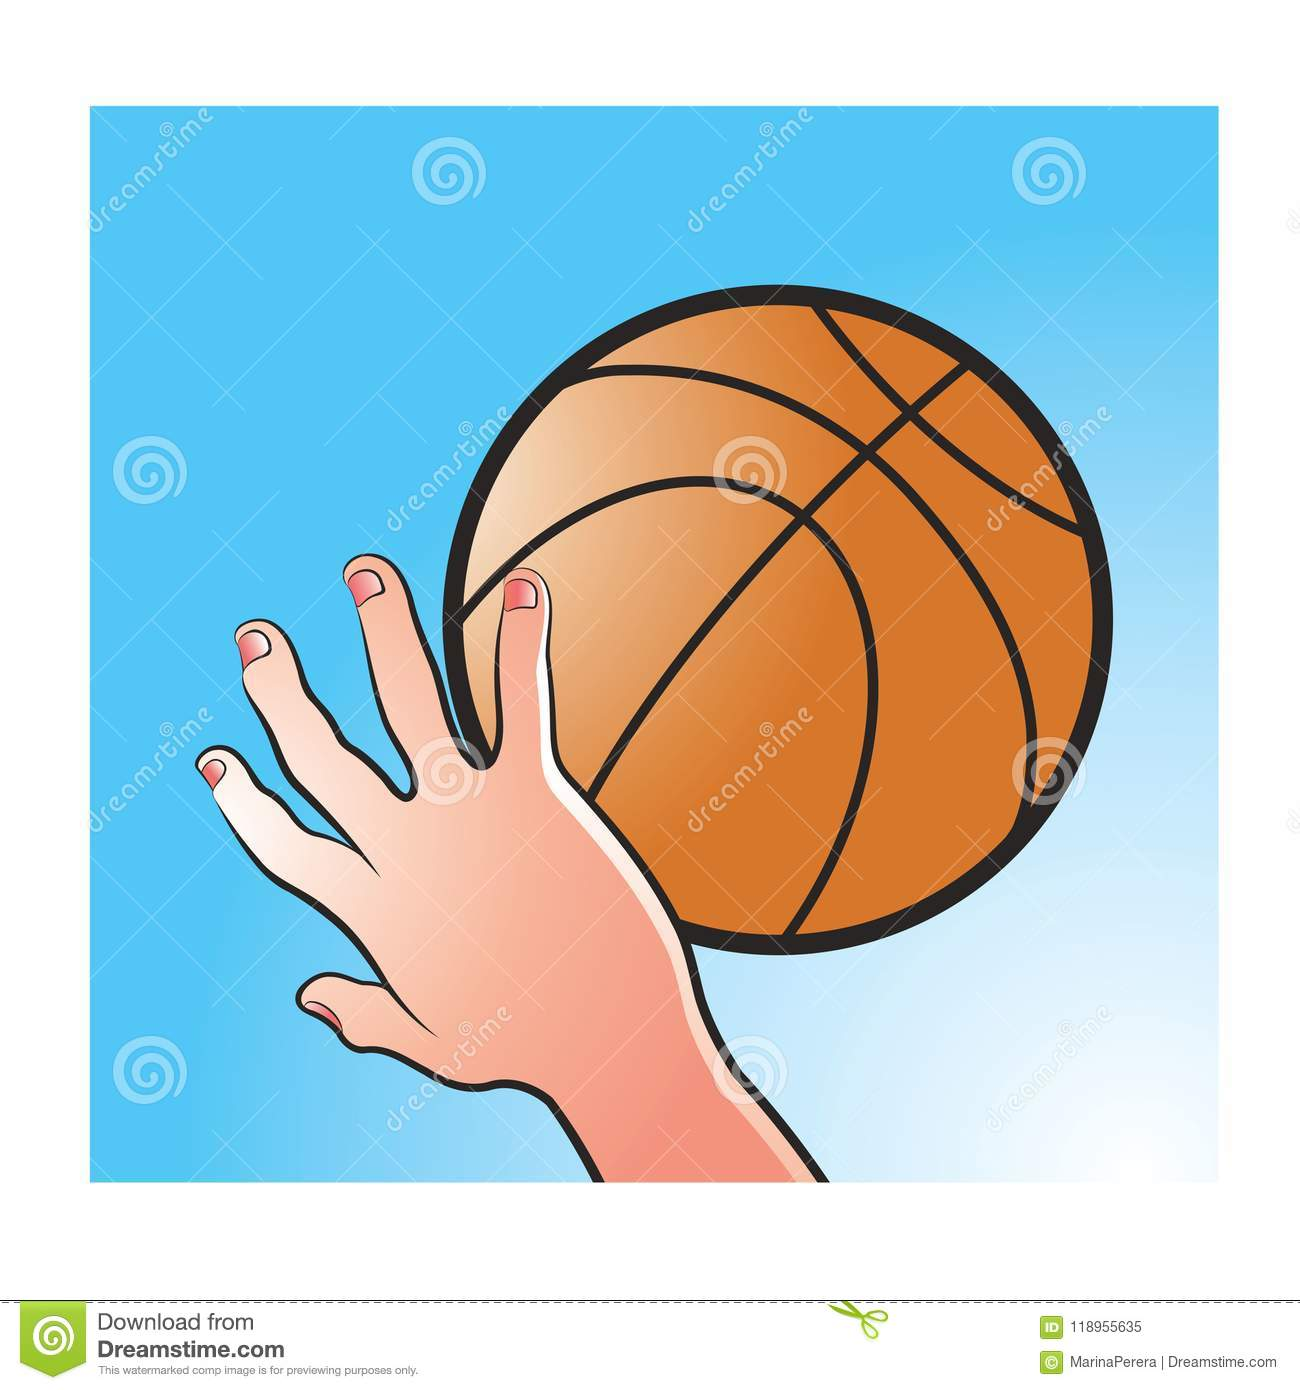 Hand Catching Basket Ball In Color Stock Vector